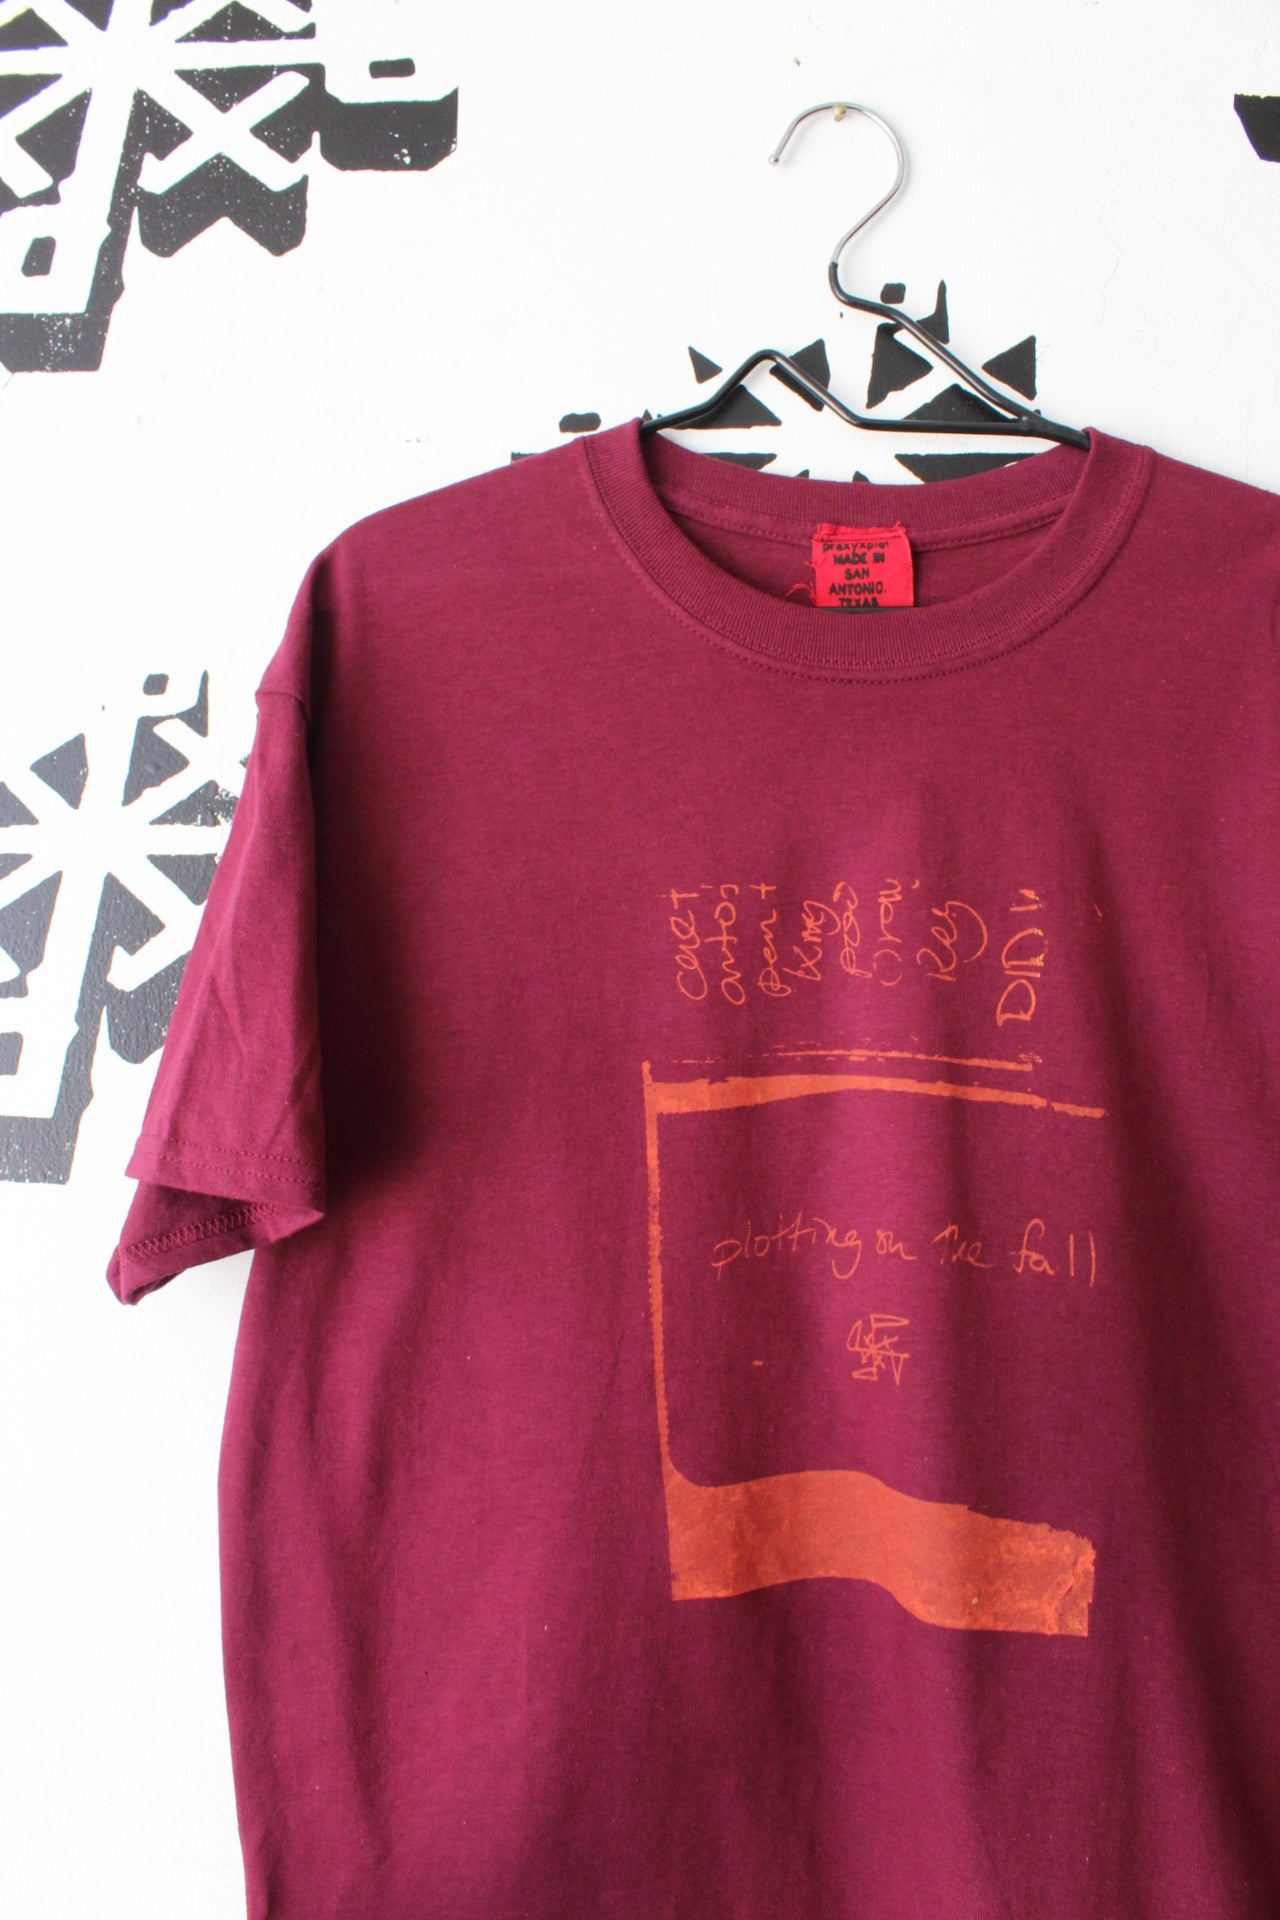 Image of plotting on the fall tee in maroon